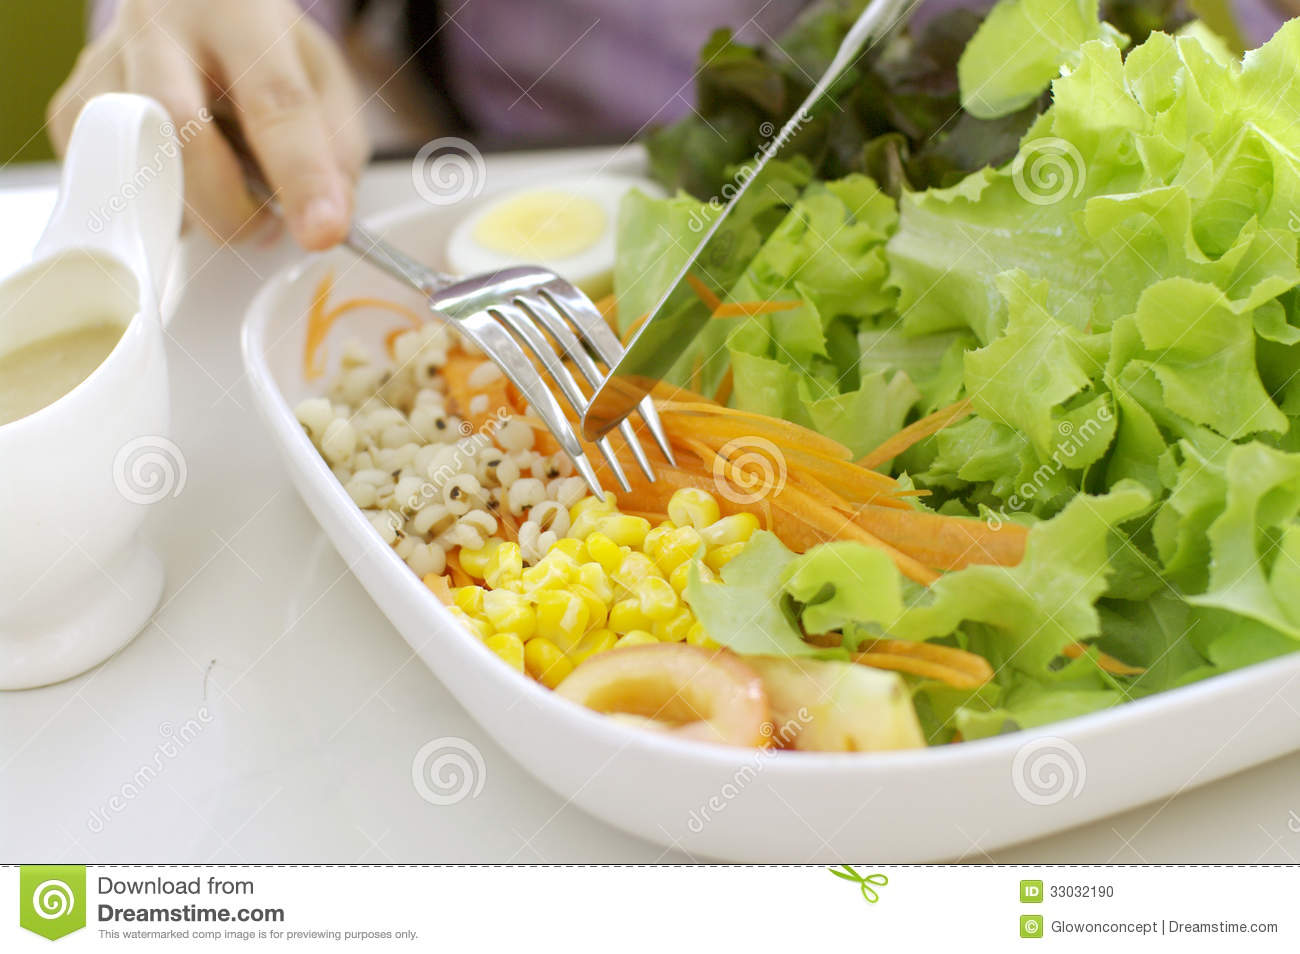 Eating Salad, Healthy Meal Stock Photo - Image: 33032190